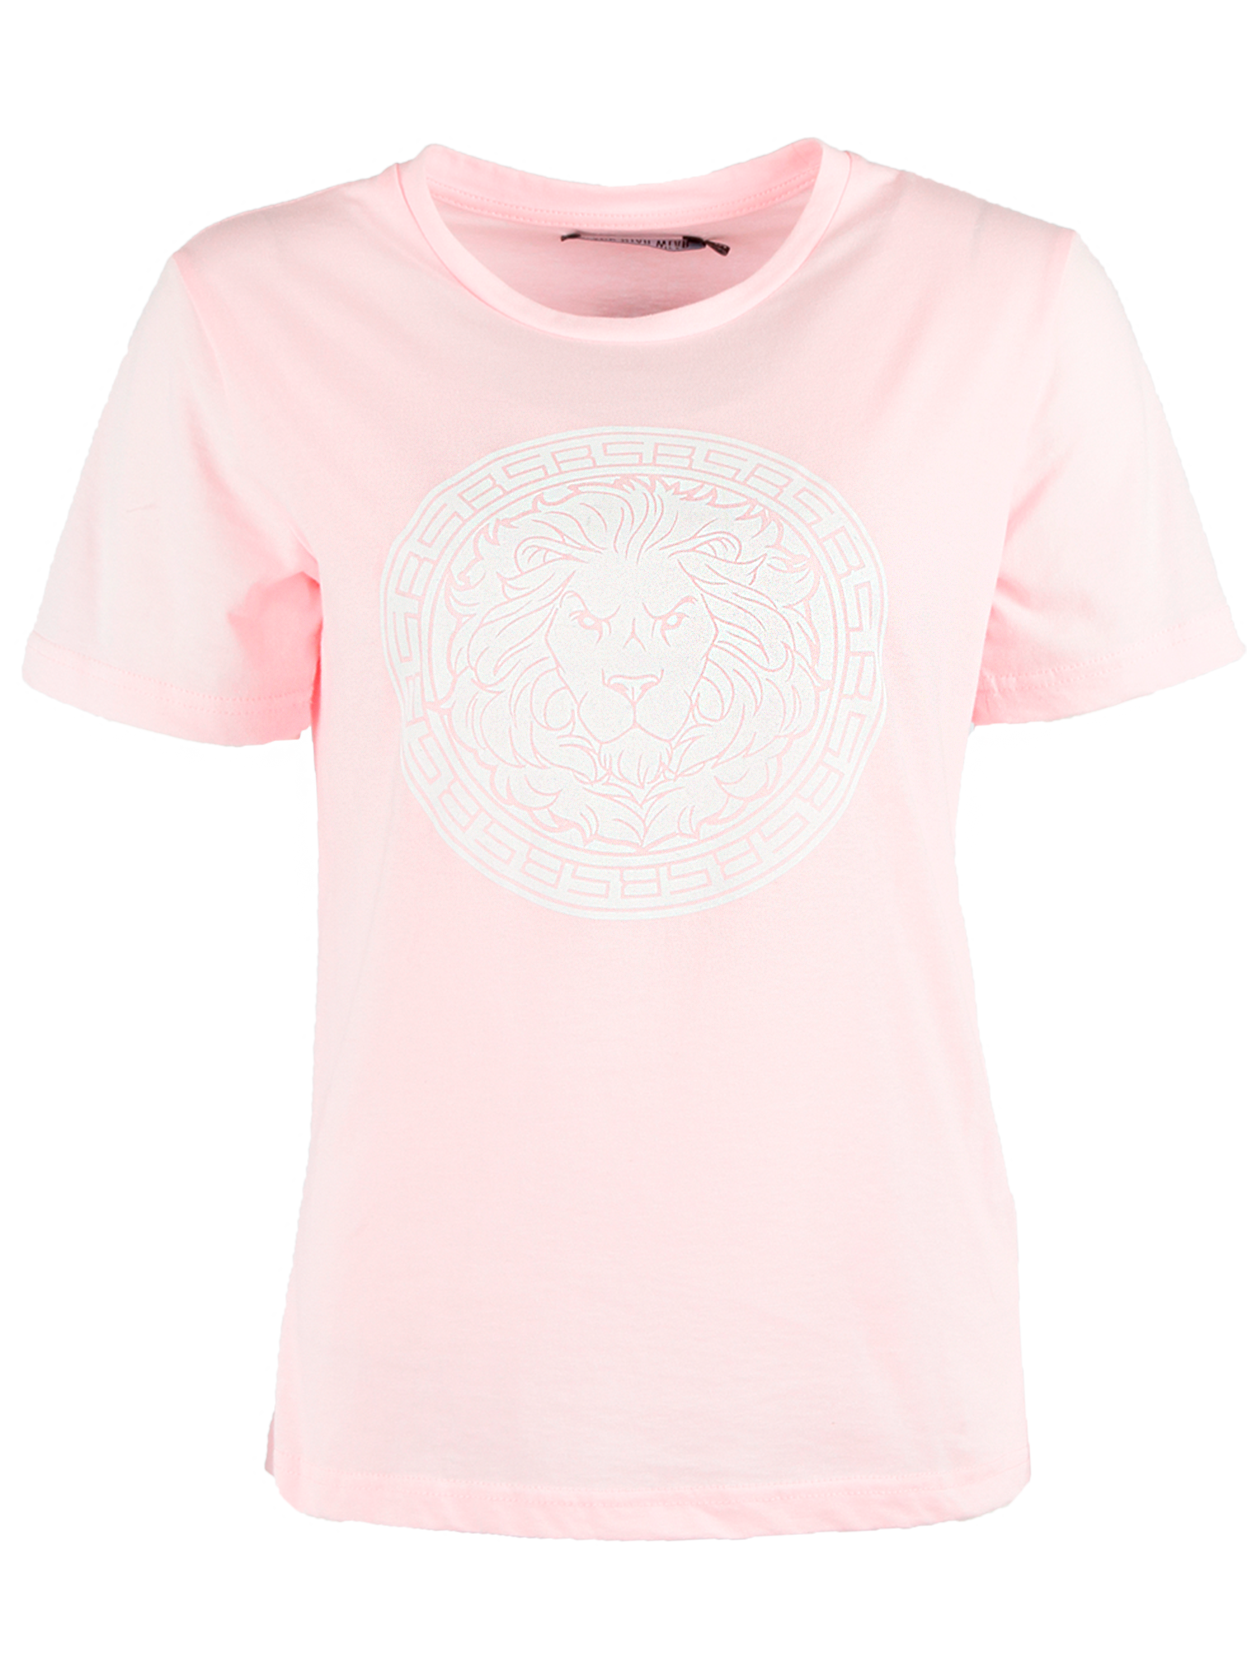 Womens t-shirt T-PRIMWomens t-shirt by Black Star Wear. White print with a lions head on the chest, natural cotton (90%), lycra (10%). Regular fit, crew neck. Avaliable in soft-pink and white color.<br><br>size: L<br>color: Pink<br>gender: female